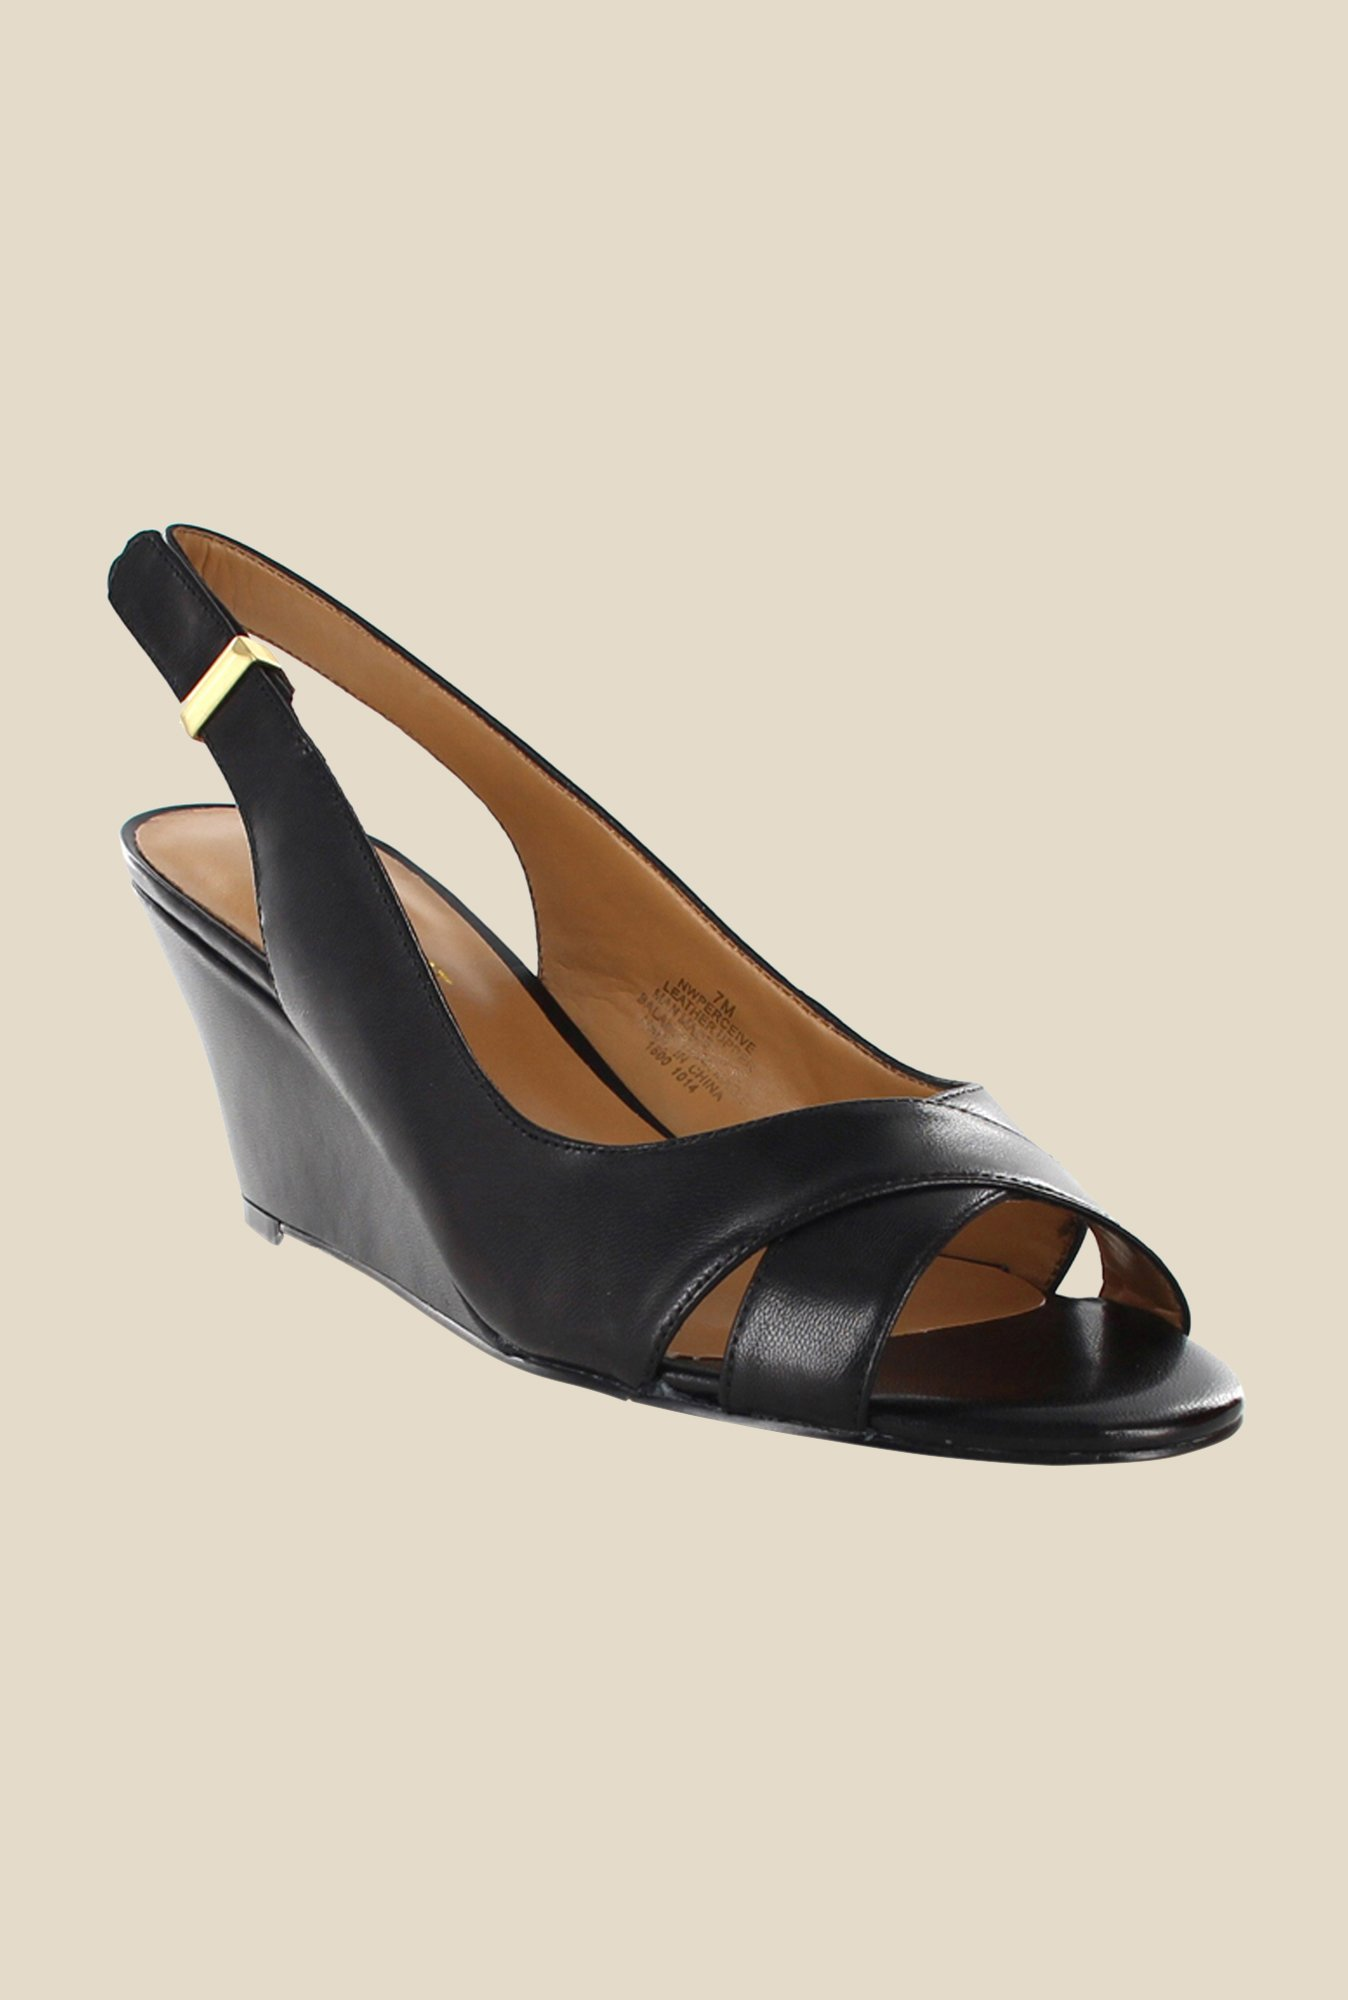 Nine West Black Sling Back Wedges